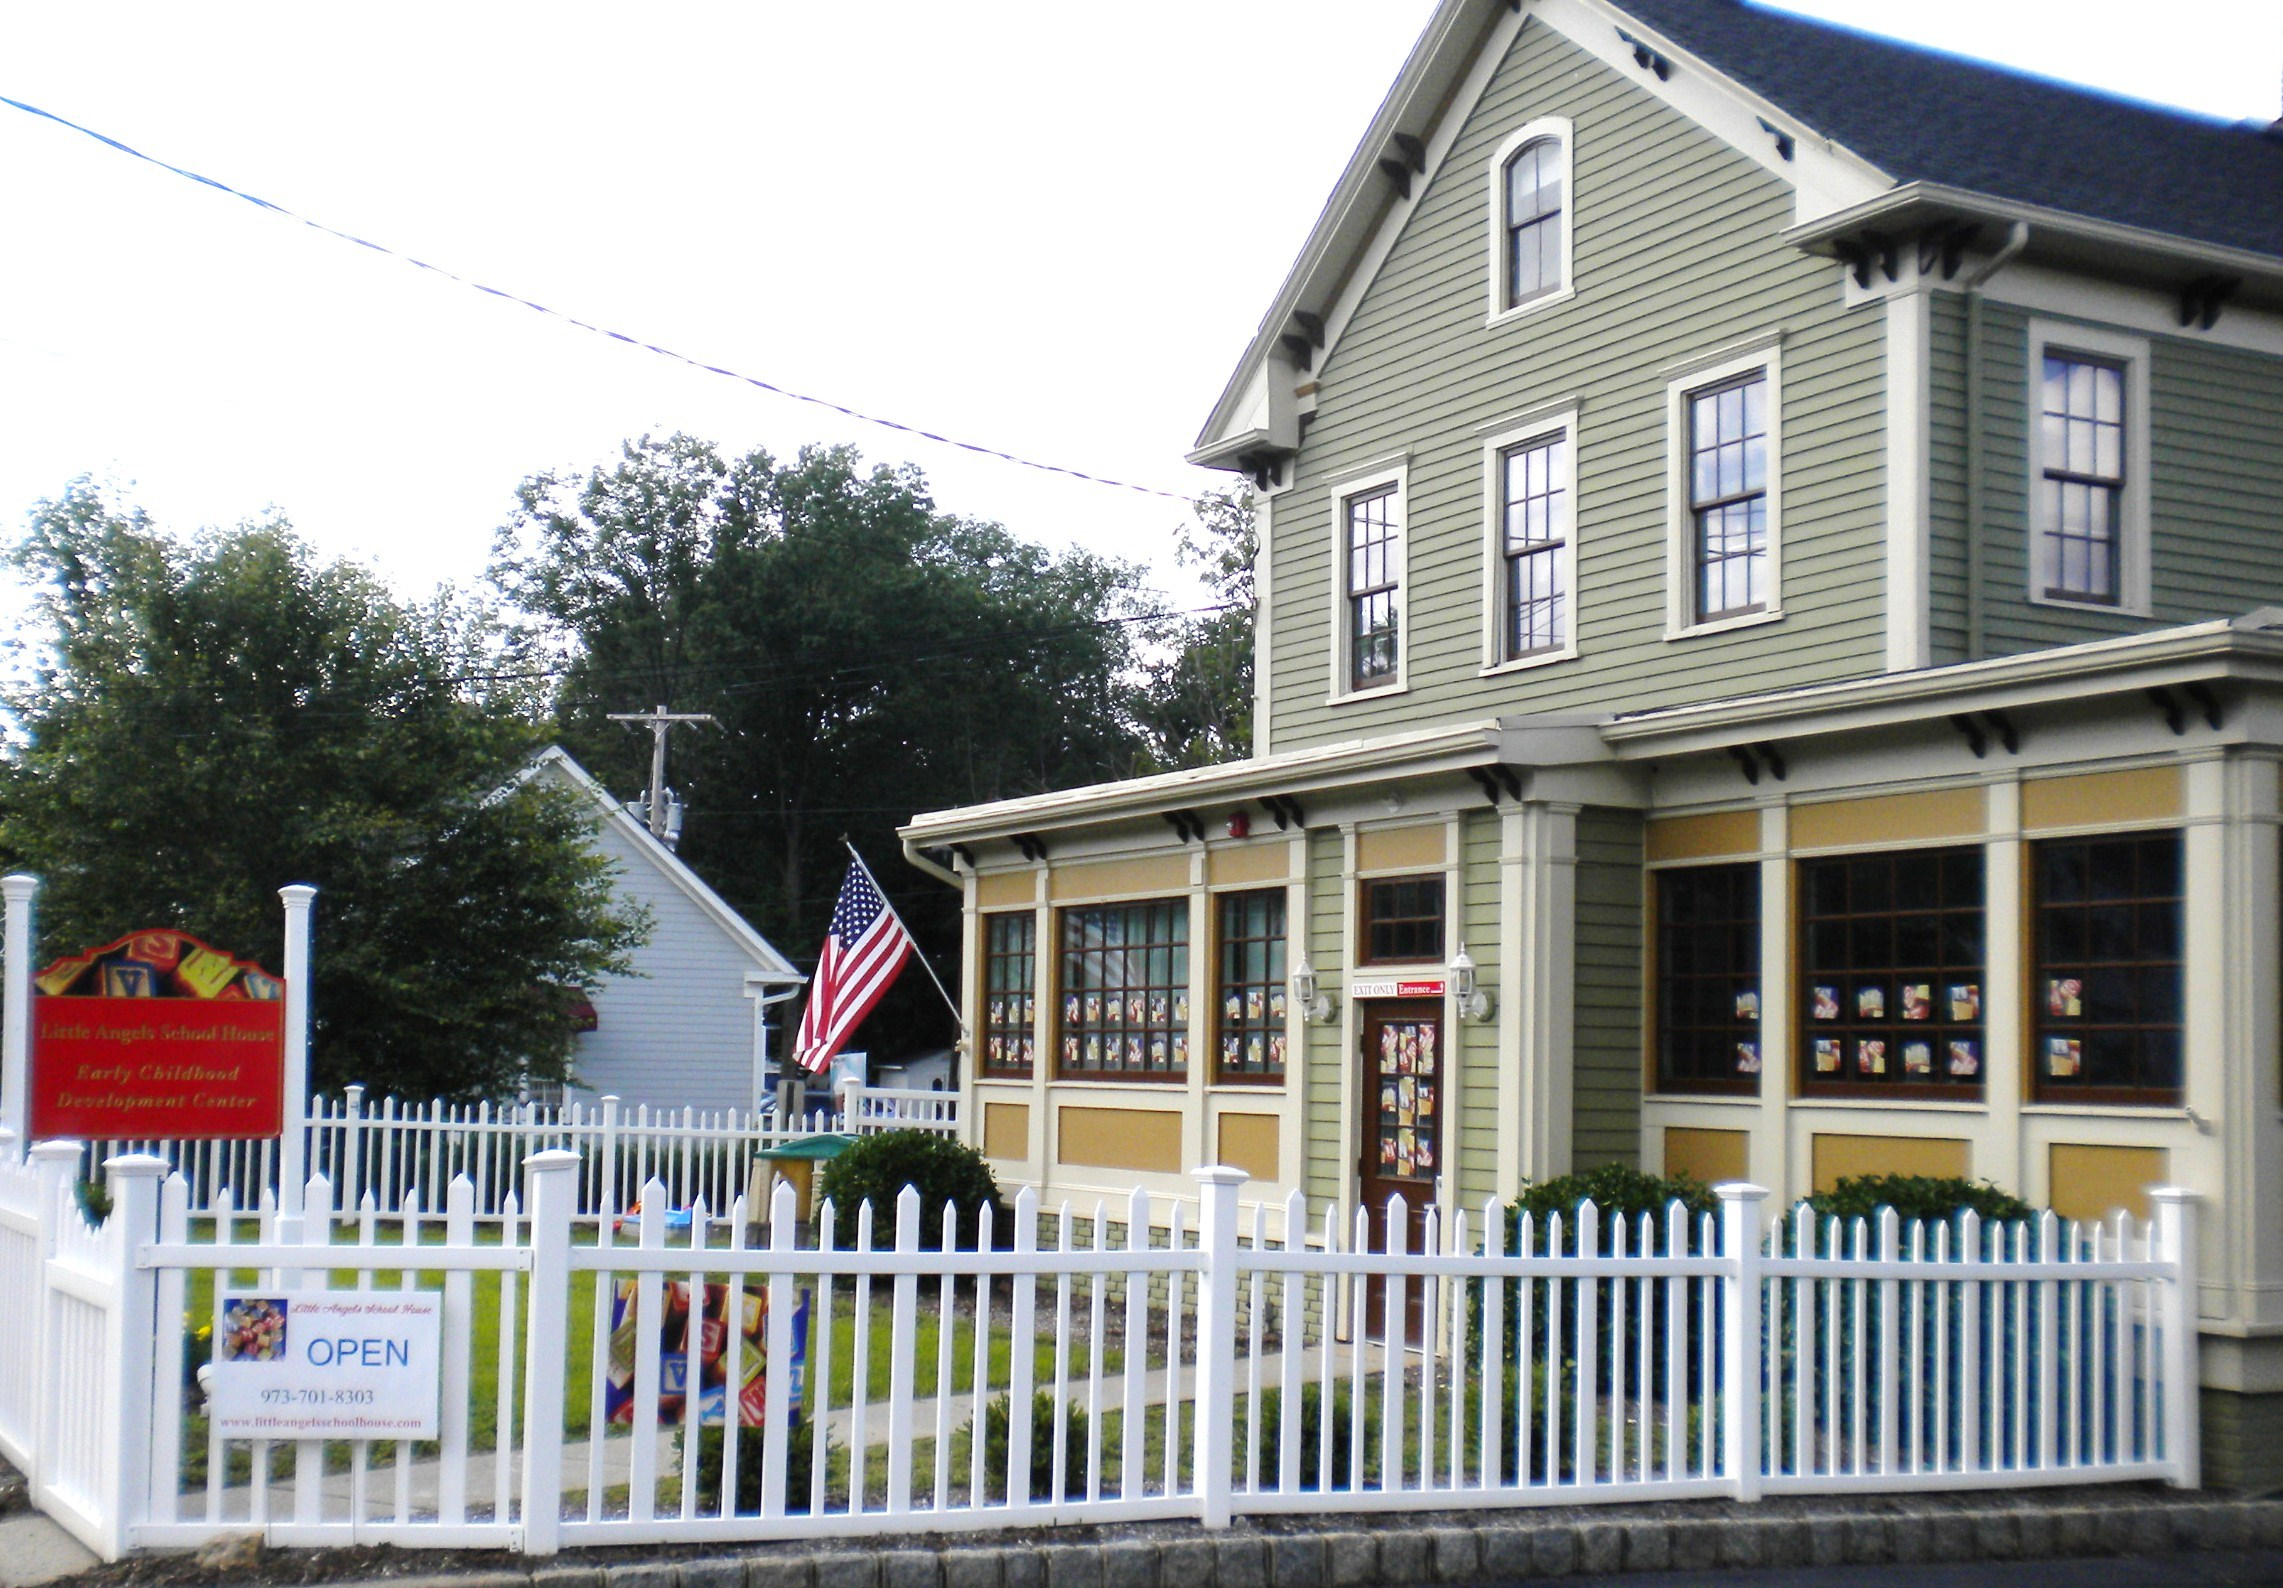 Little Angels School House Is Located At 110 Main St Chatham Credits Tap